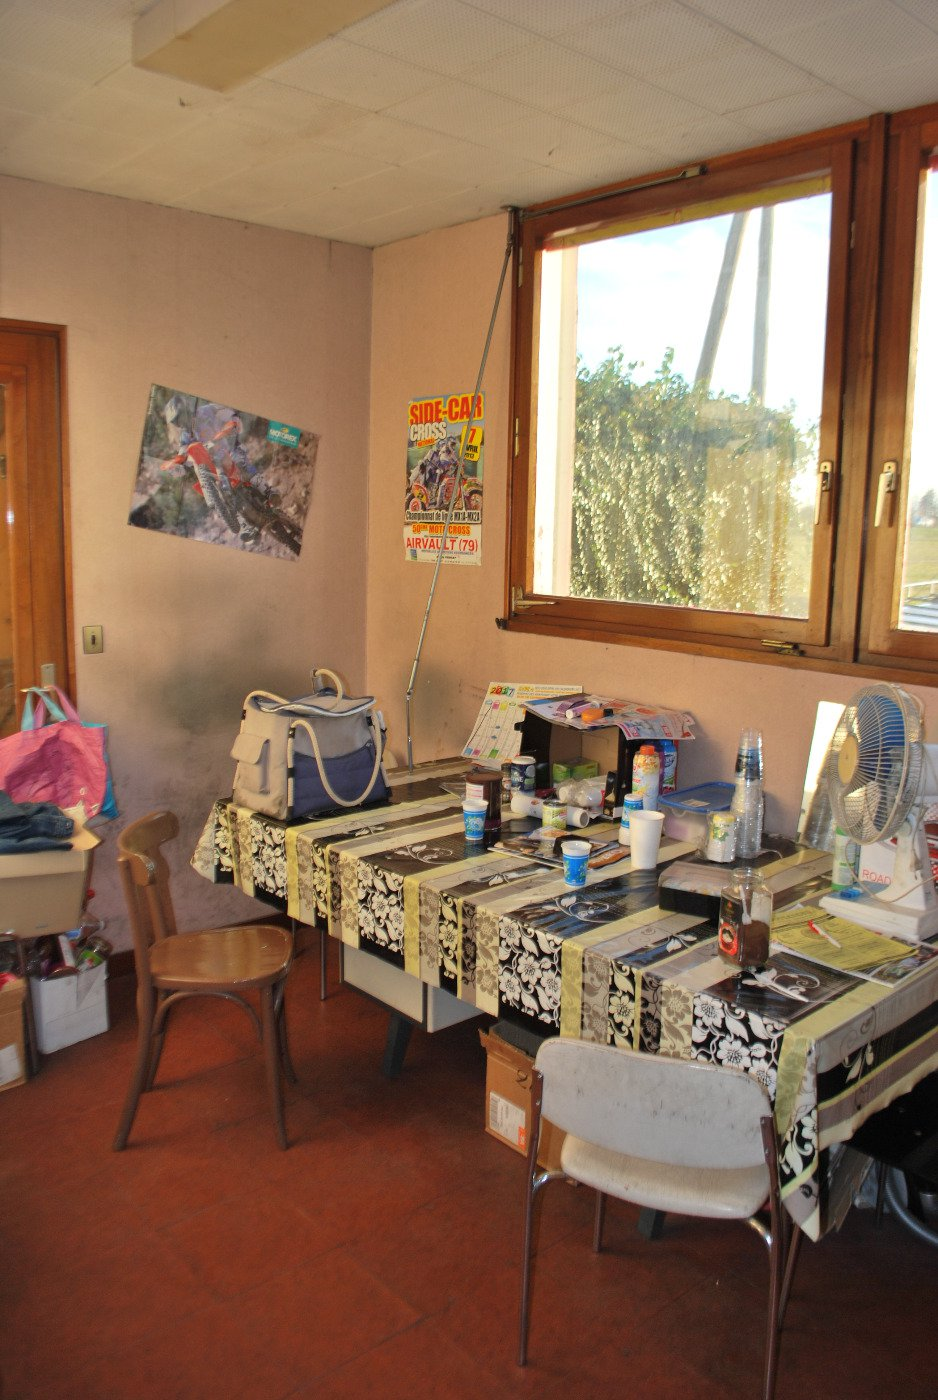 Rental Premises - Thouars